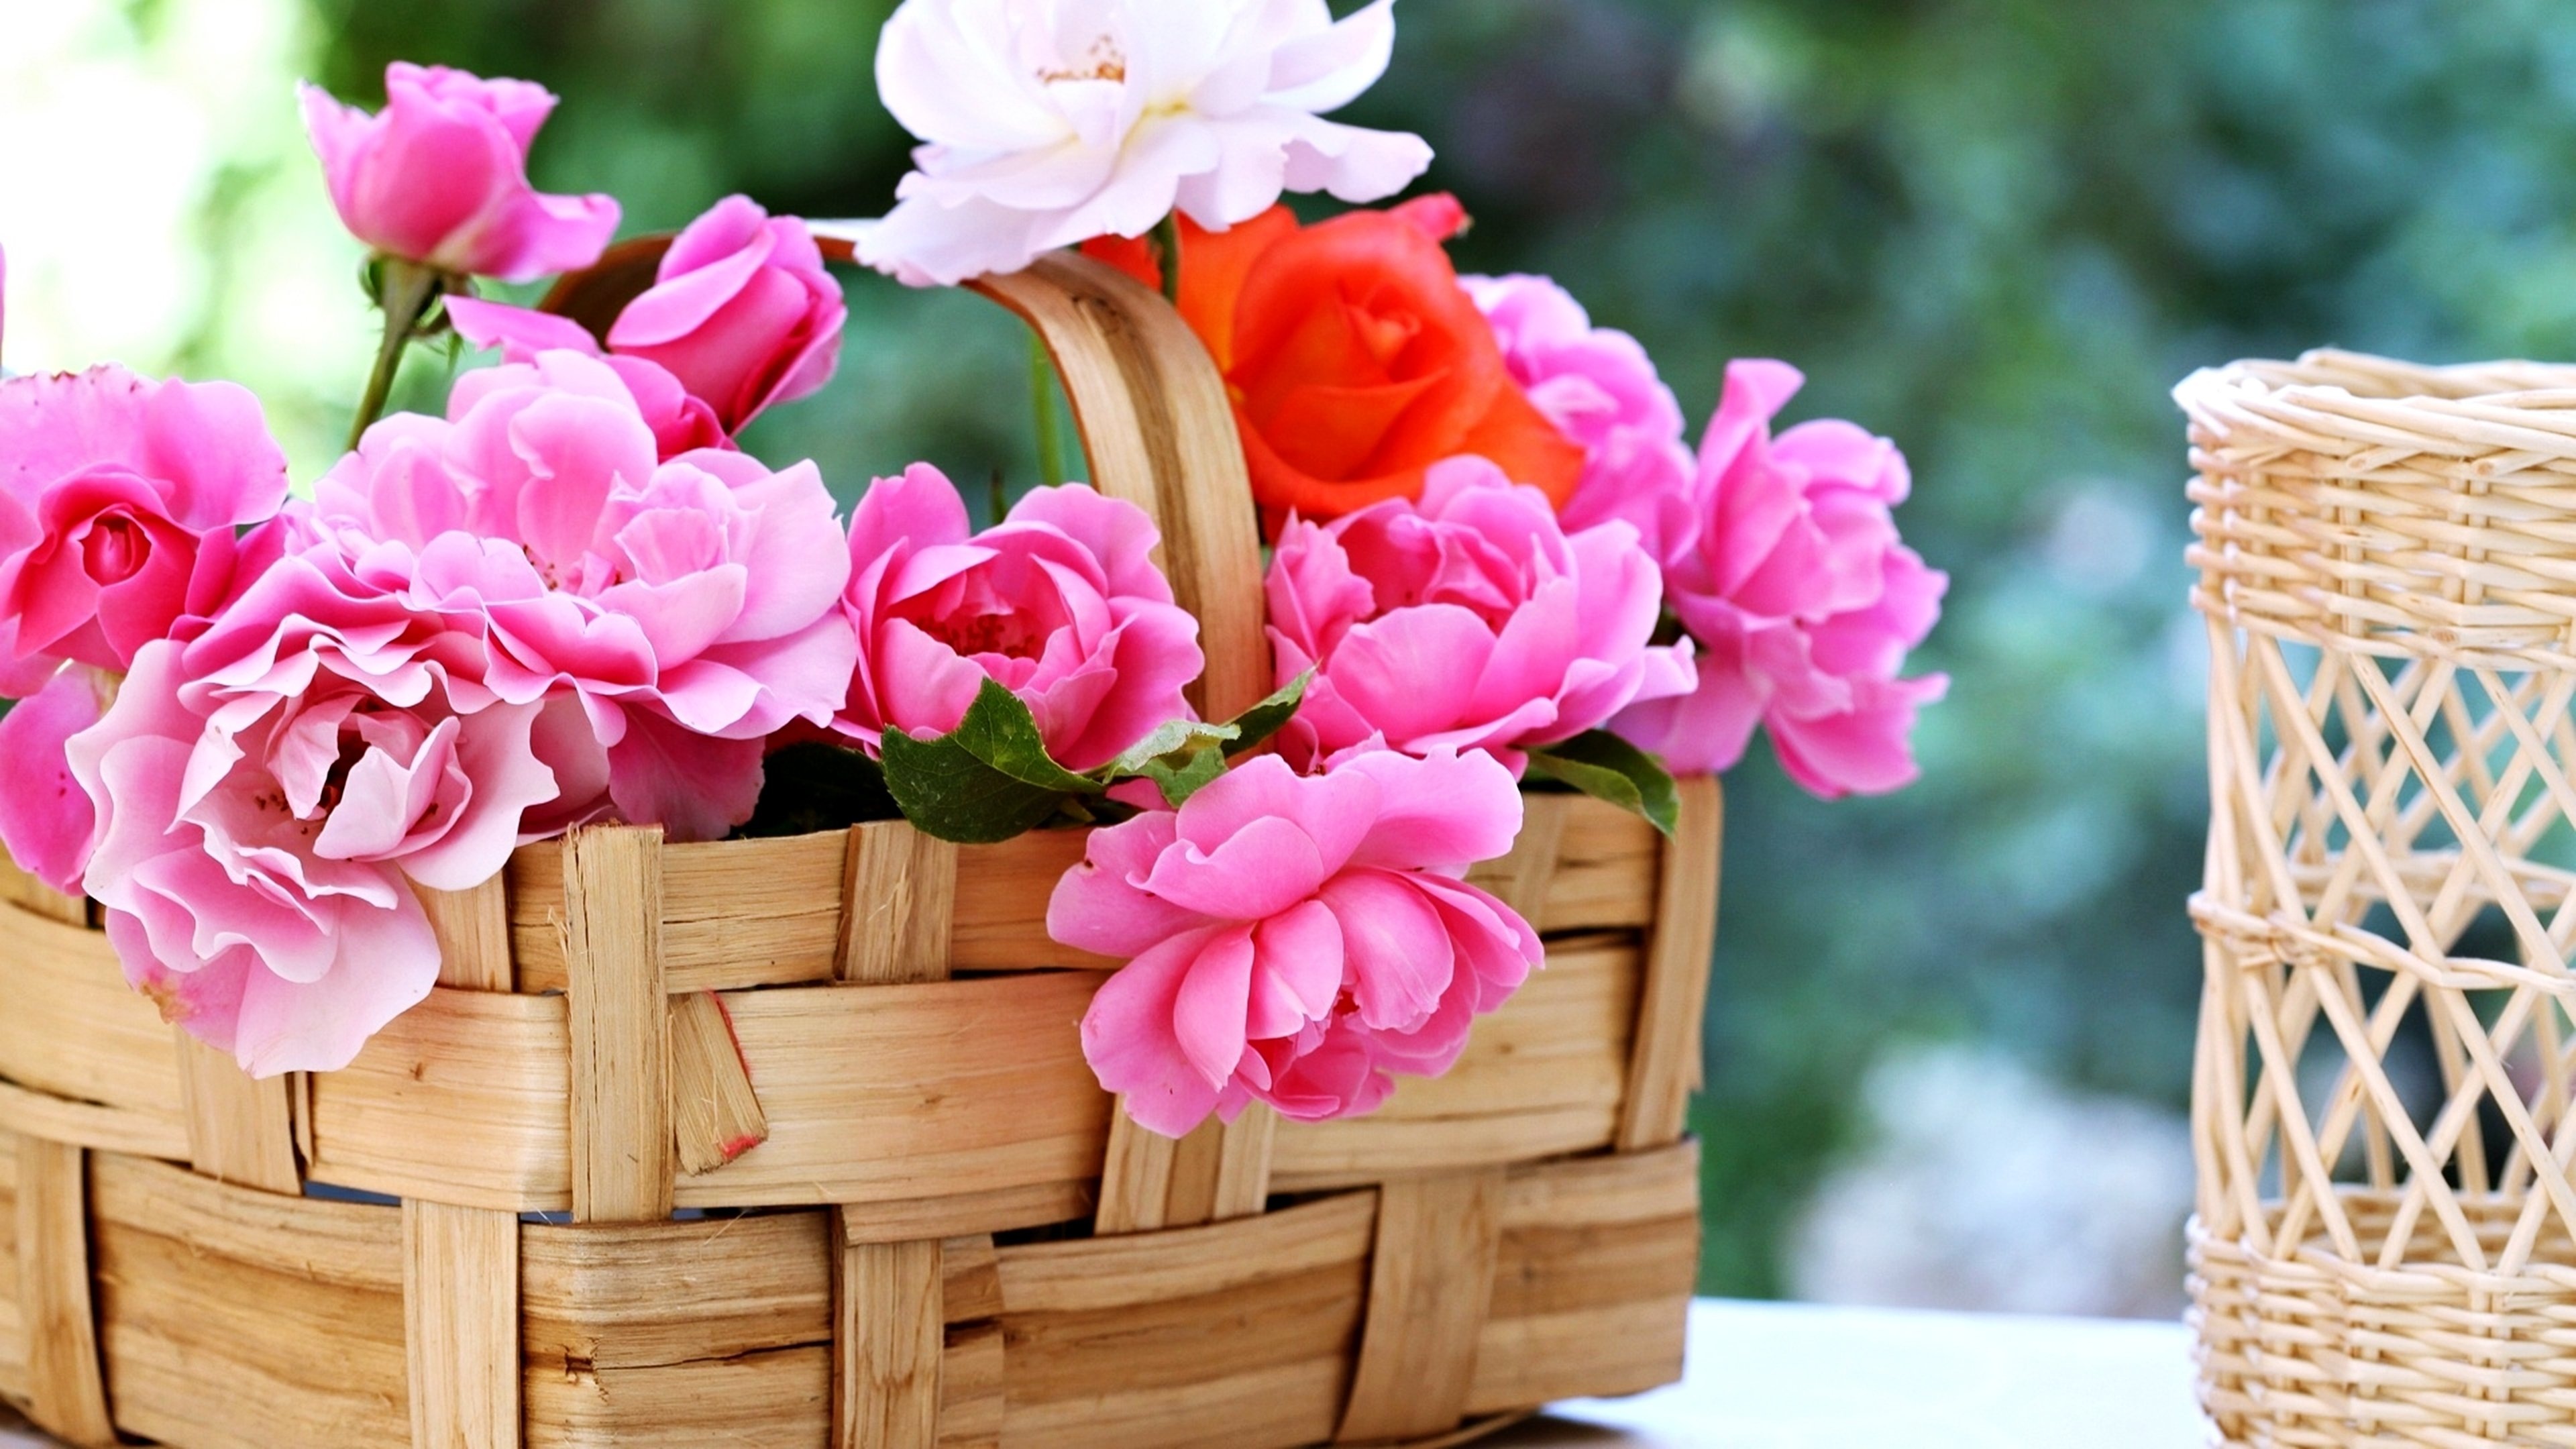 Love Garden Roses: Basket Roses Flowers Gardens Spring Nature Beauty Love